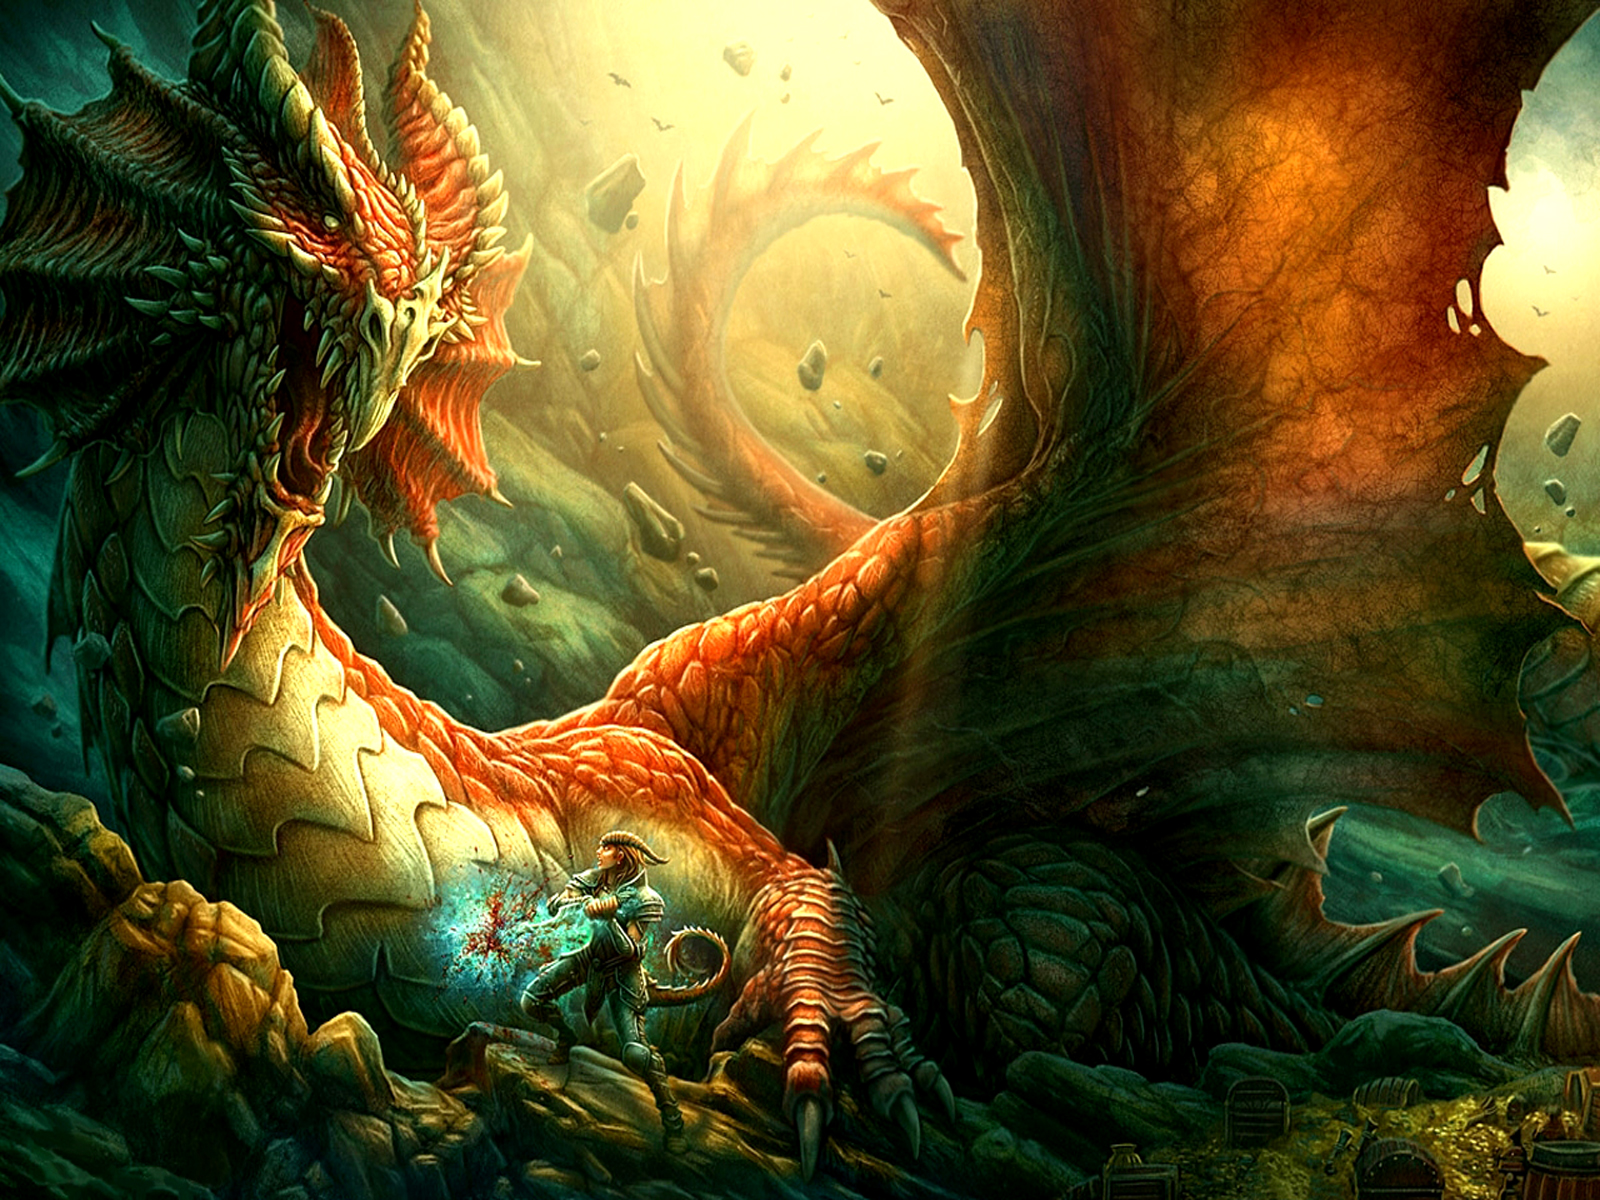 Fantasy - Drachen  Wallpaper